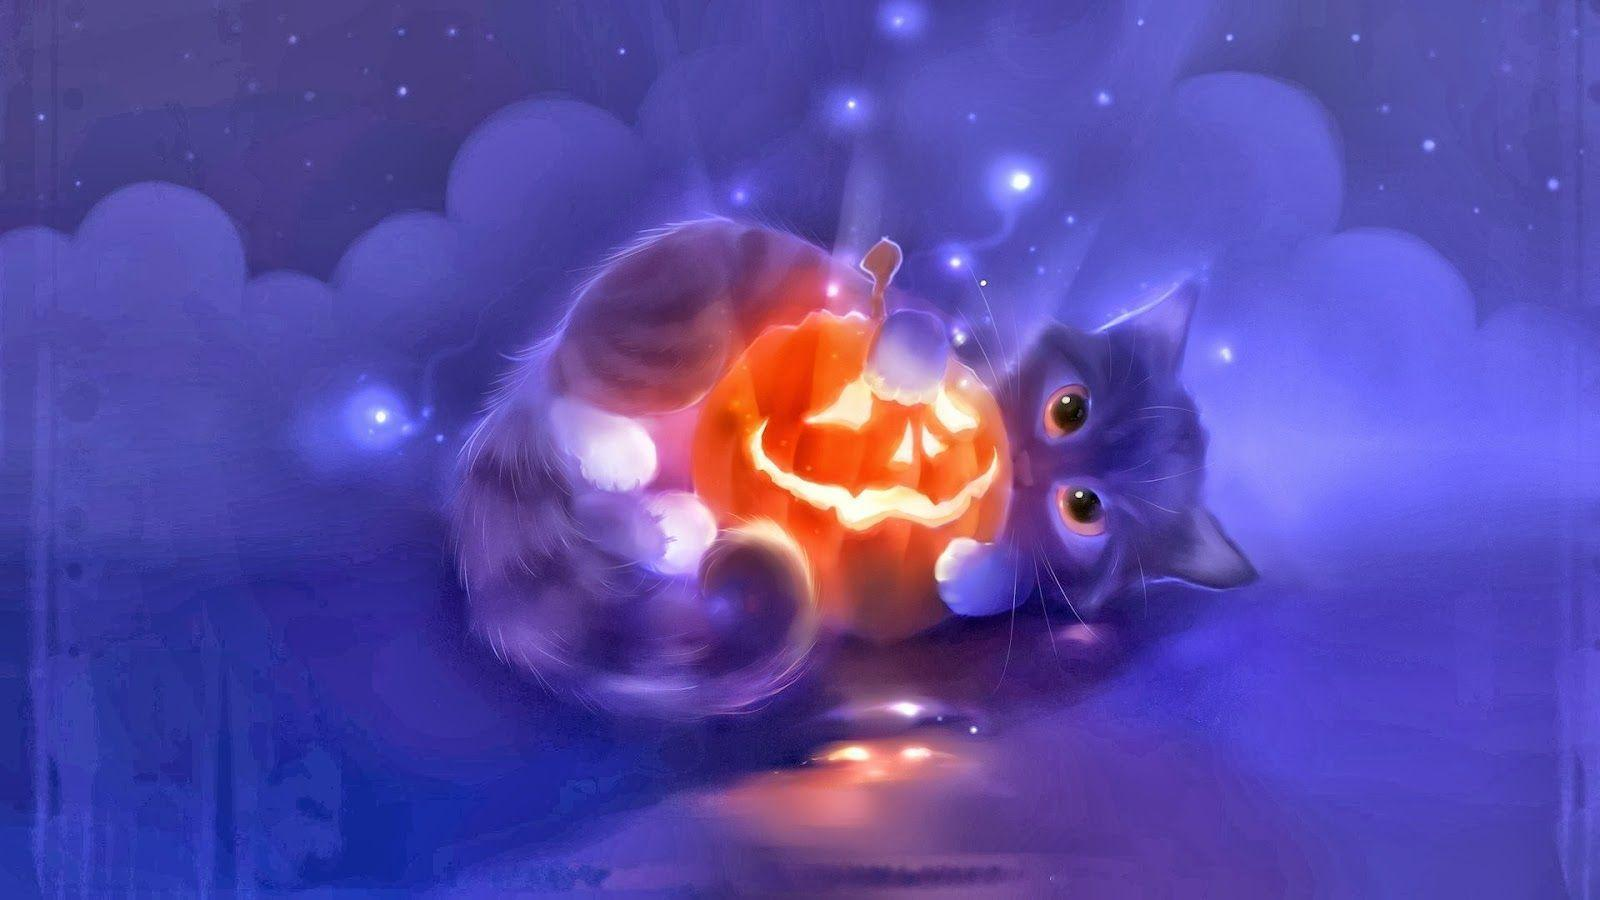 Cute Cat Lantern Pumpkin Halloween x5 HD Wallpaper